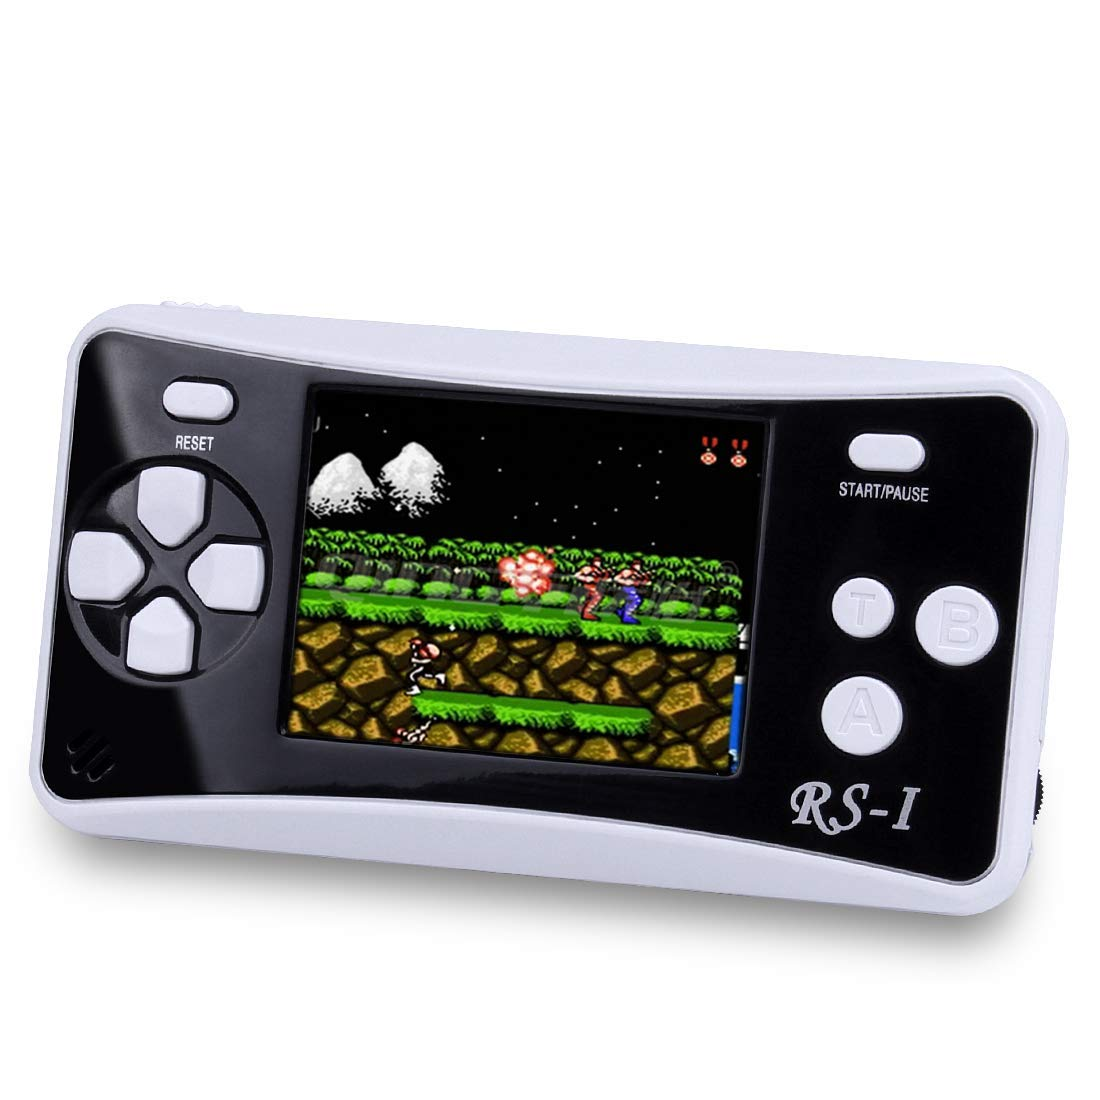 SKYRC Handheld Game Console for Kids,Classic Retro Game Player with 2.5'' LCD 8-Bit Portable Video Games Compatible with PAL AAD NTSC TV ,152 in 1 Classic Games -- (Black)